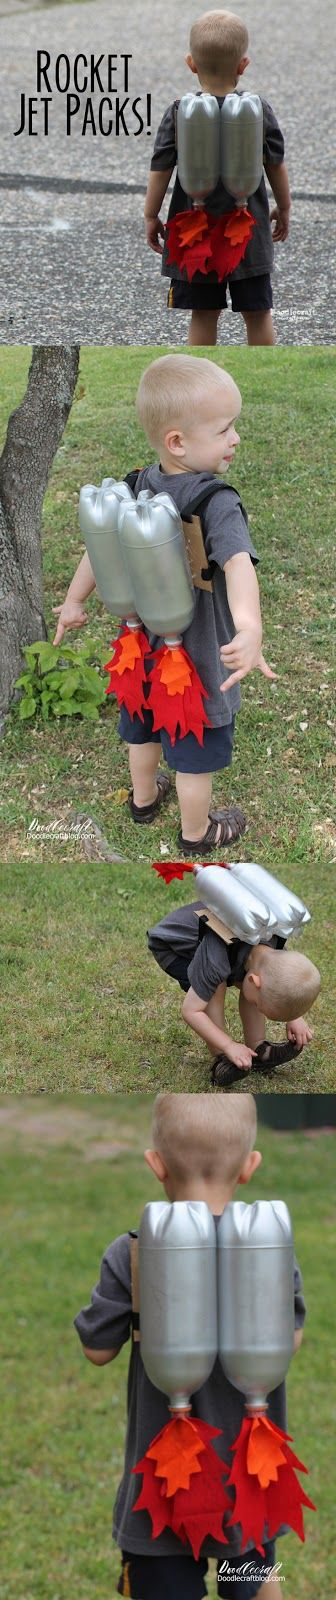 Rocket Jet Pack Craft For Kids Great For Little Imaginations Space